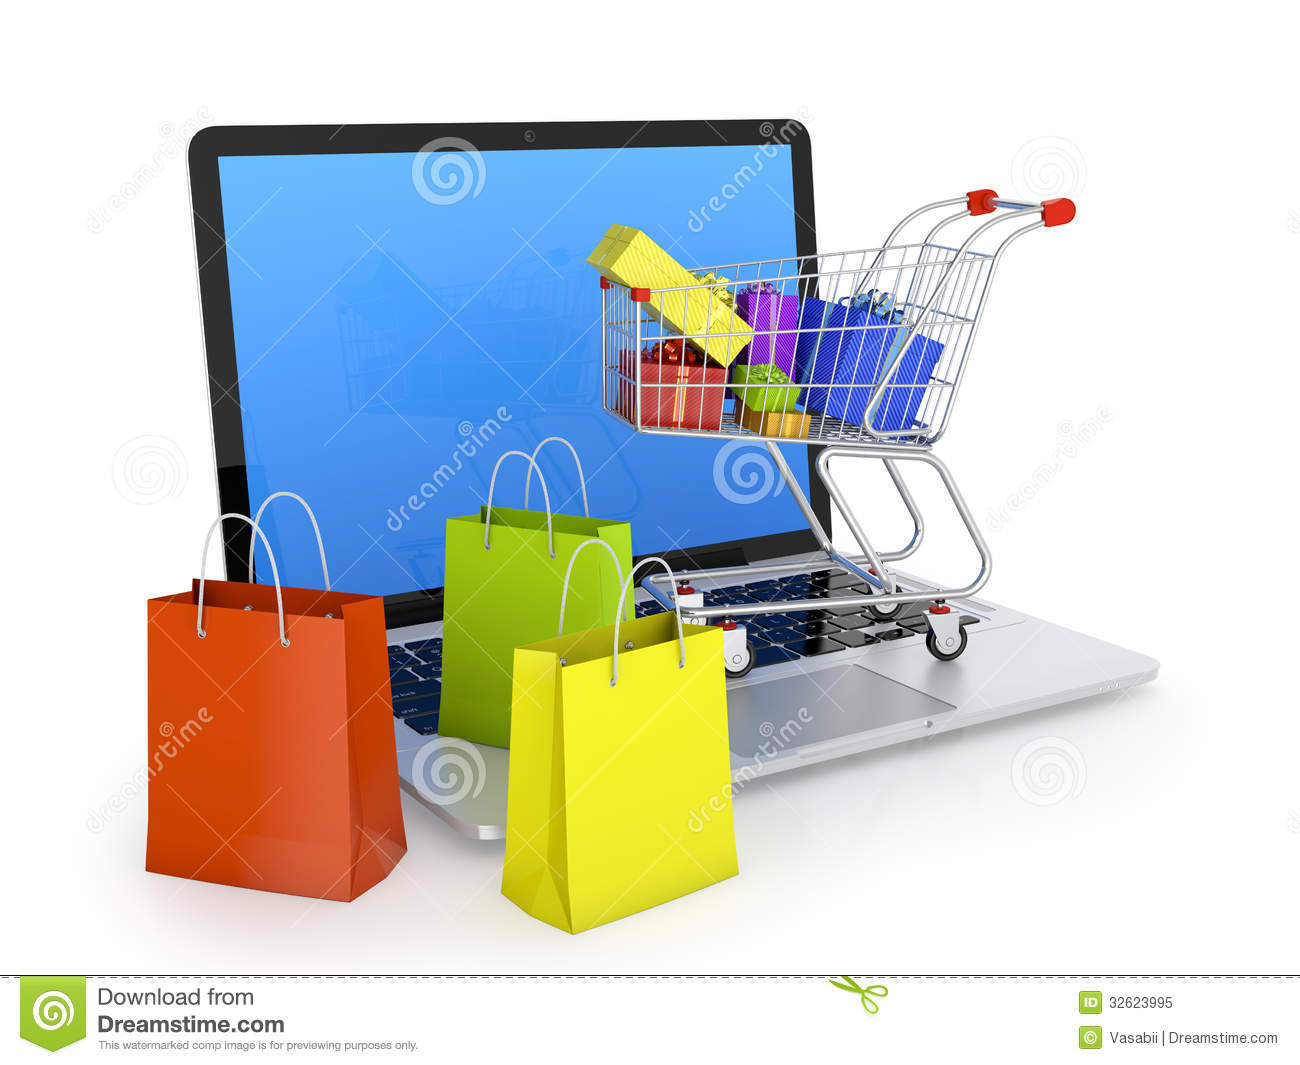 electronic commerce comparison shopping Introduction to computer information systems/e-commerce for users to compare the benefits of shopping via introduction to computer information systems.